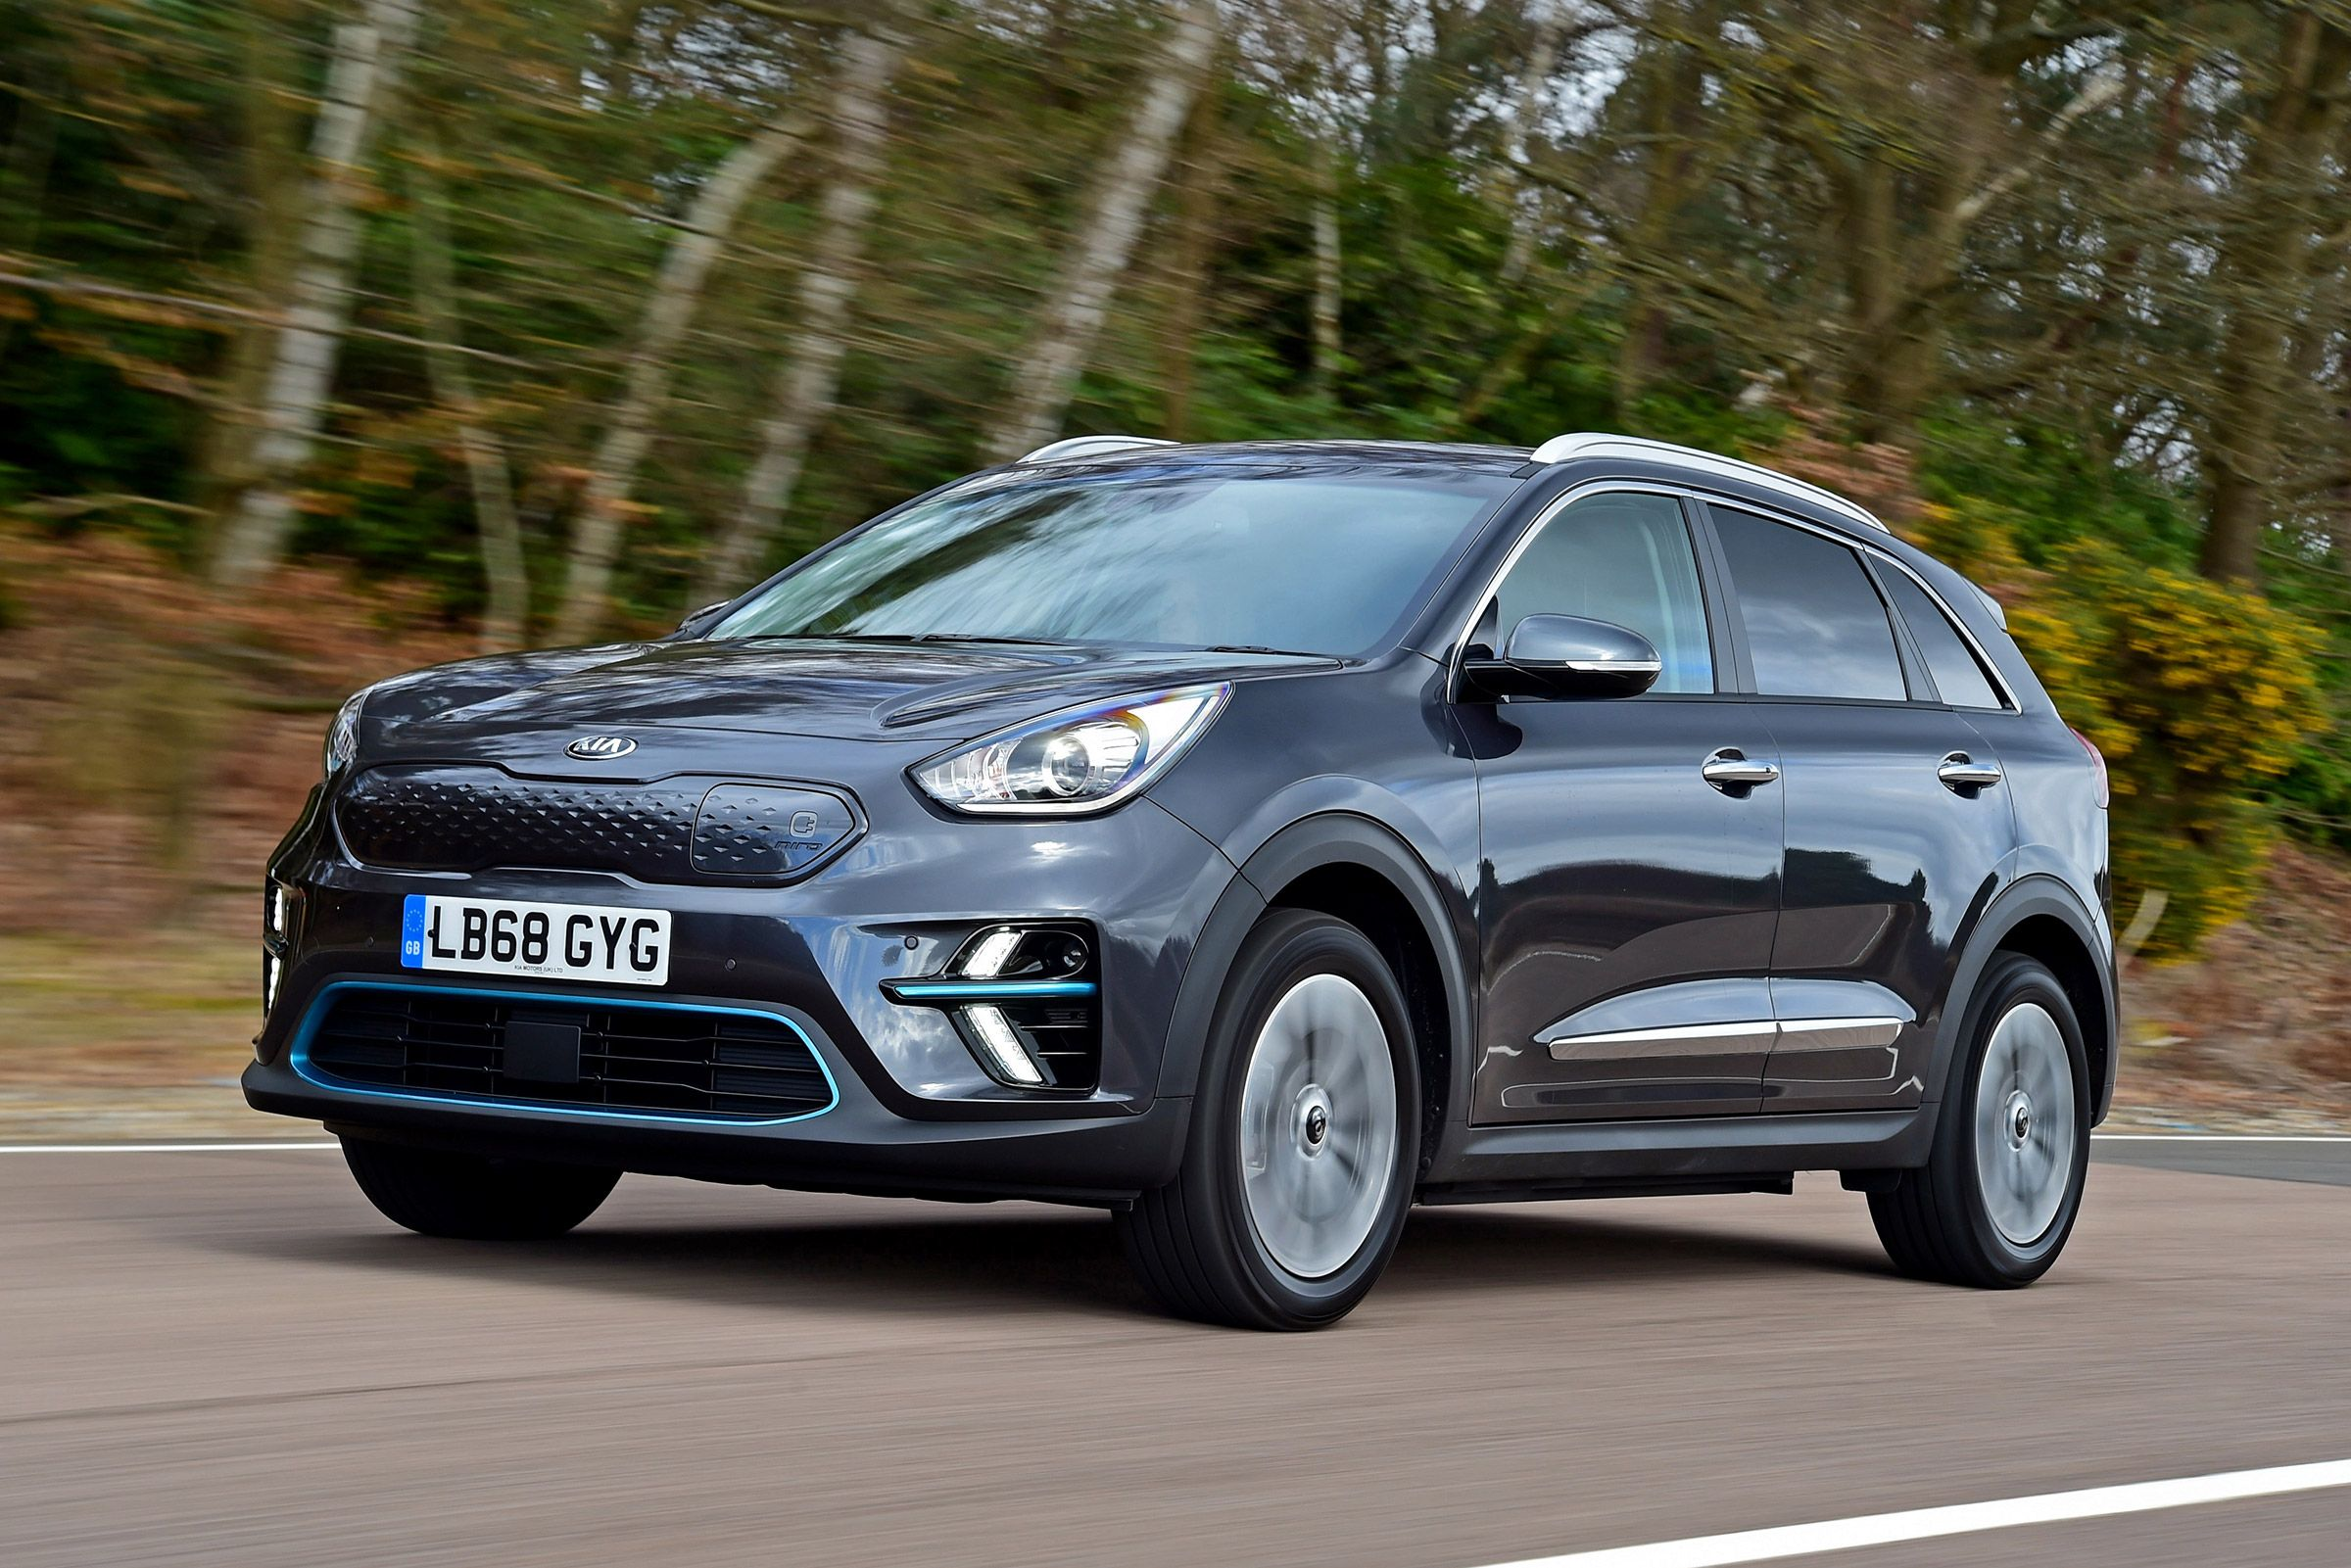 Kia 2035 petrol and diesel car ban doesn't worry us в 2020 г